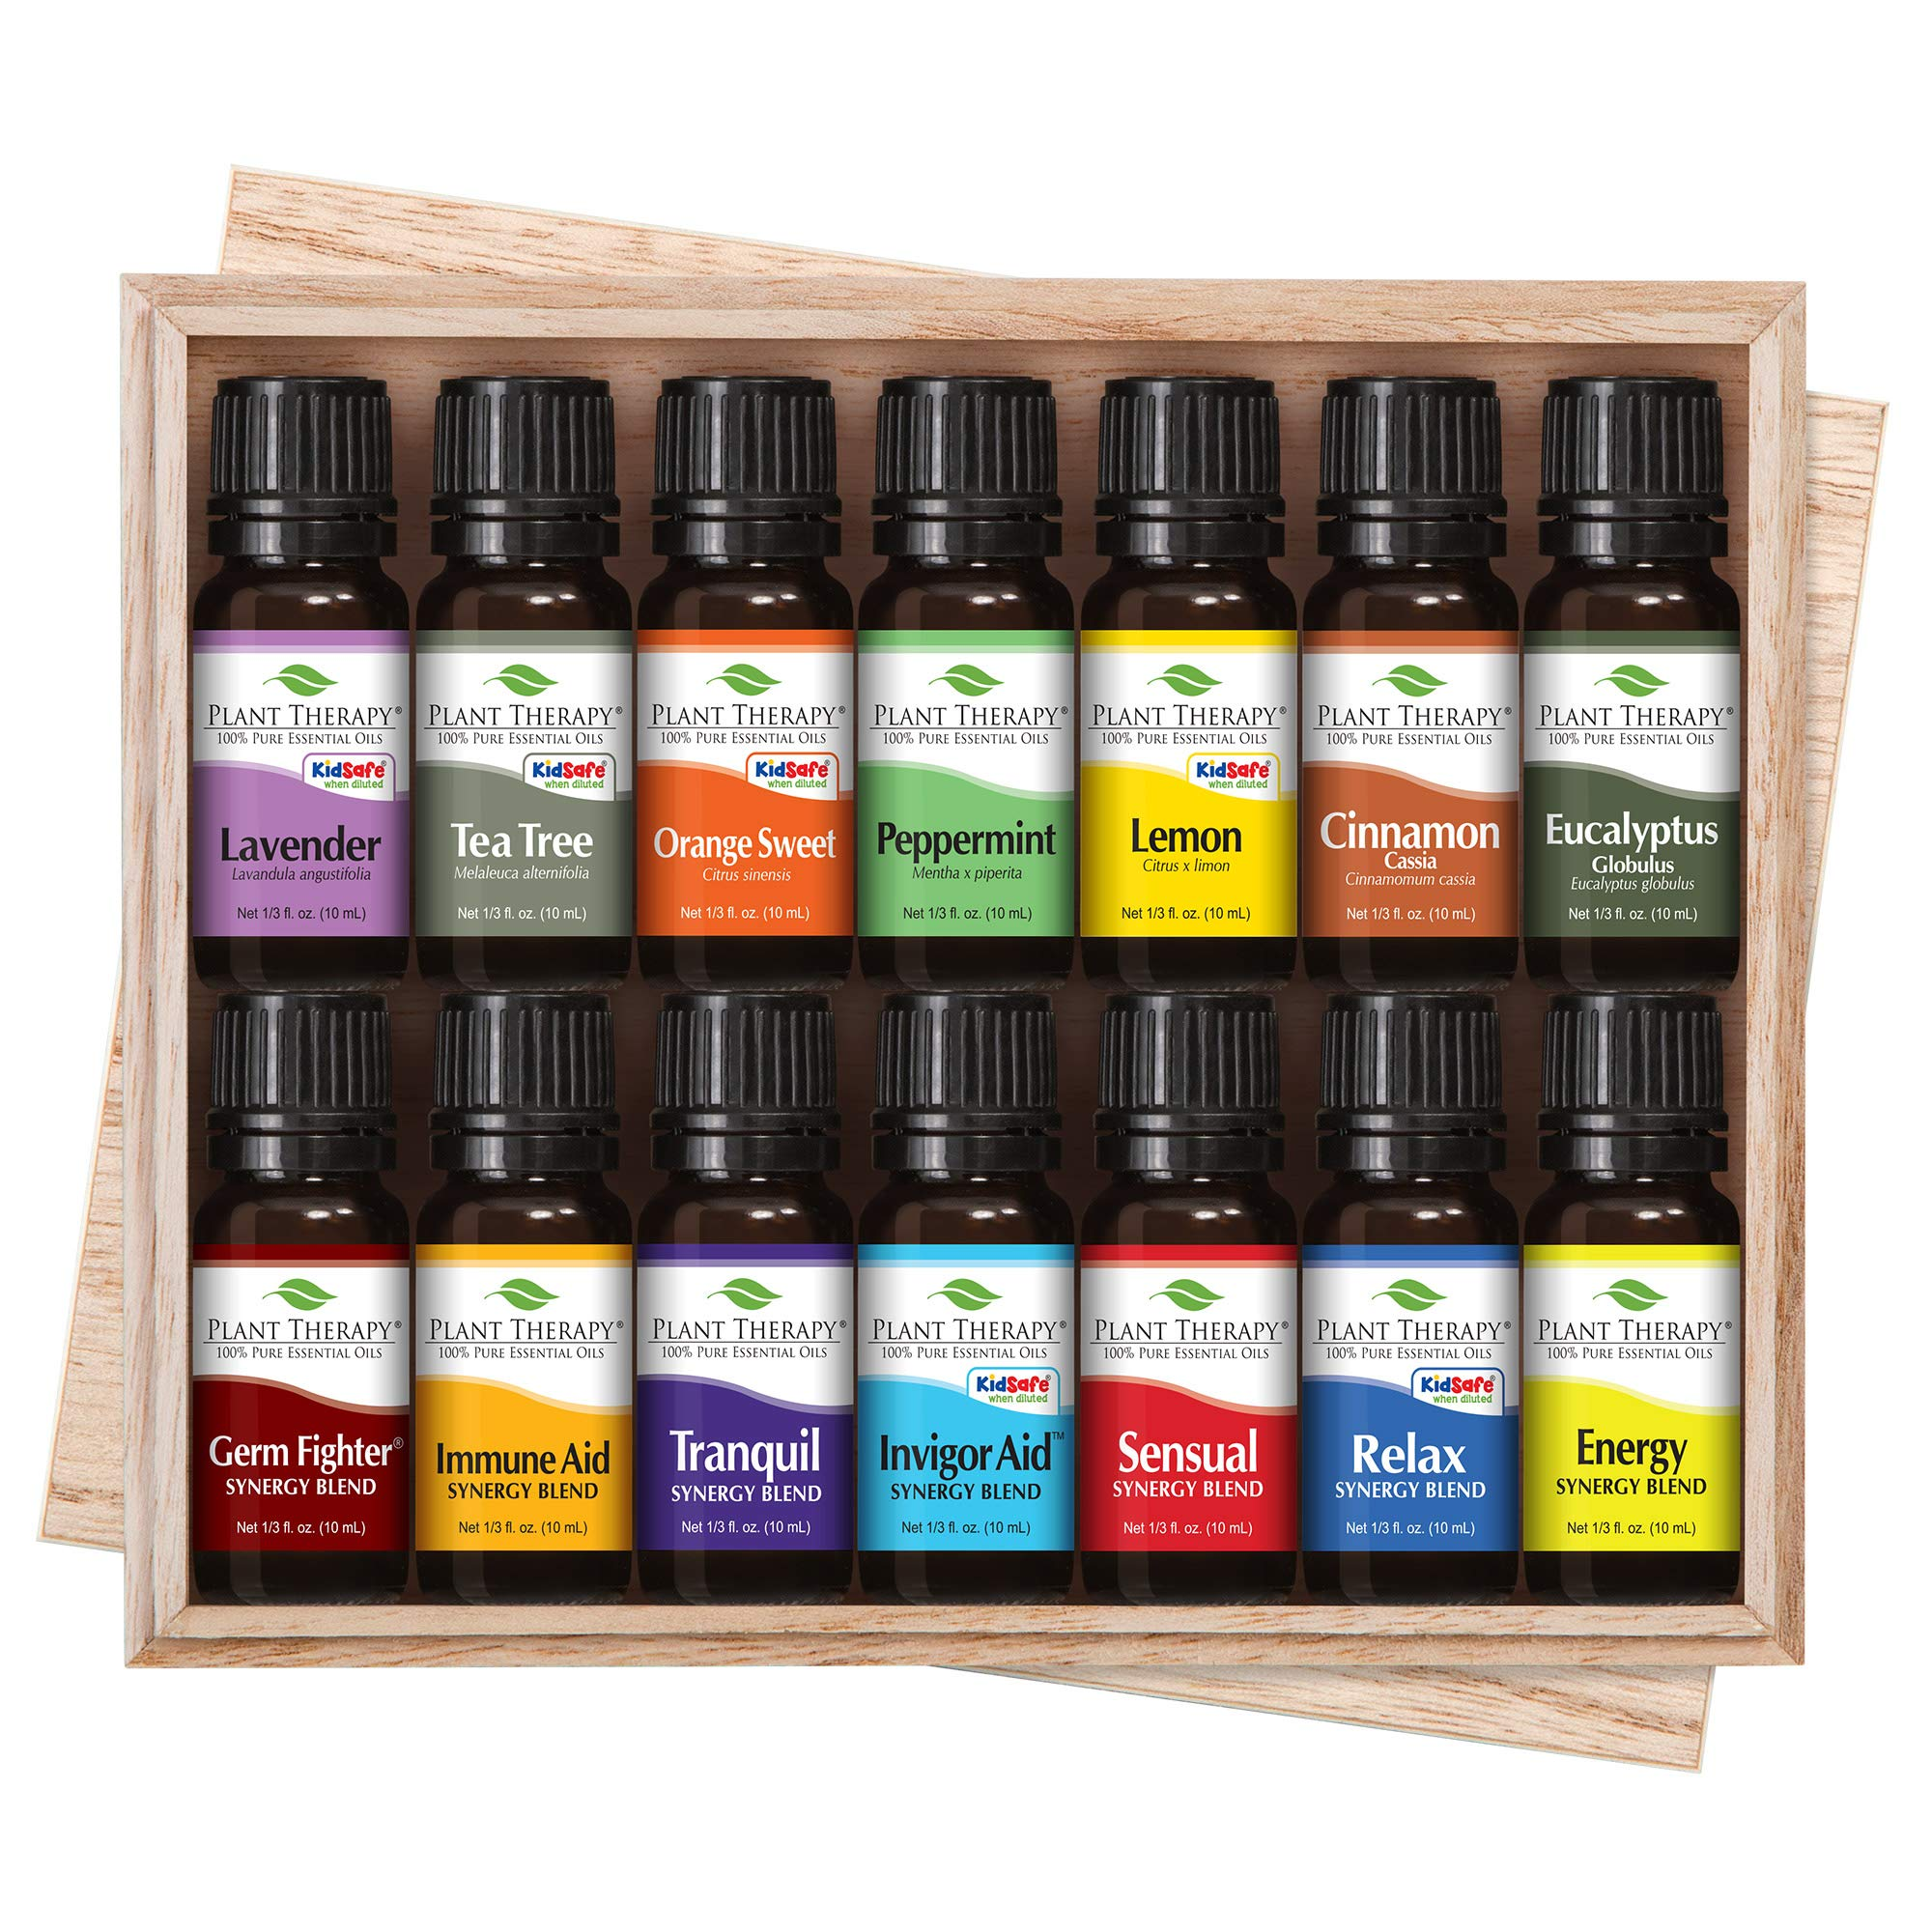 Plant Therapy 7 & 7 Essential Oilss Set 7 Single Oils: Lavender, Peppermint & More, 7 Synergy Blends in A Wooden Box 100% Pure, Undiluted, Natural Aromatherapy, Therapeutic Grade 10 mL (1/3 oz) by Plant Therapy